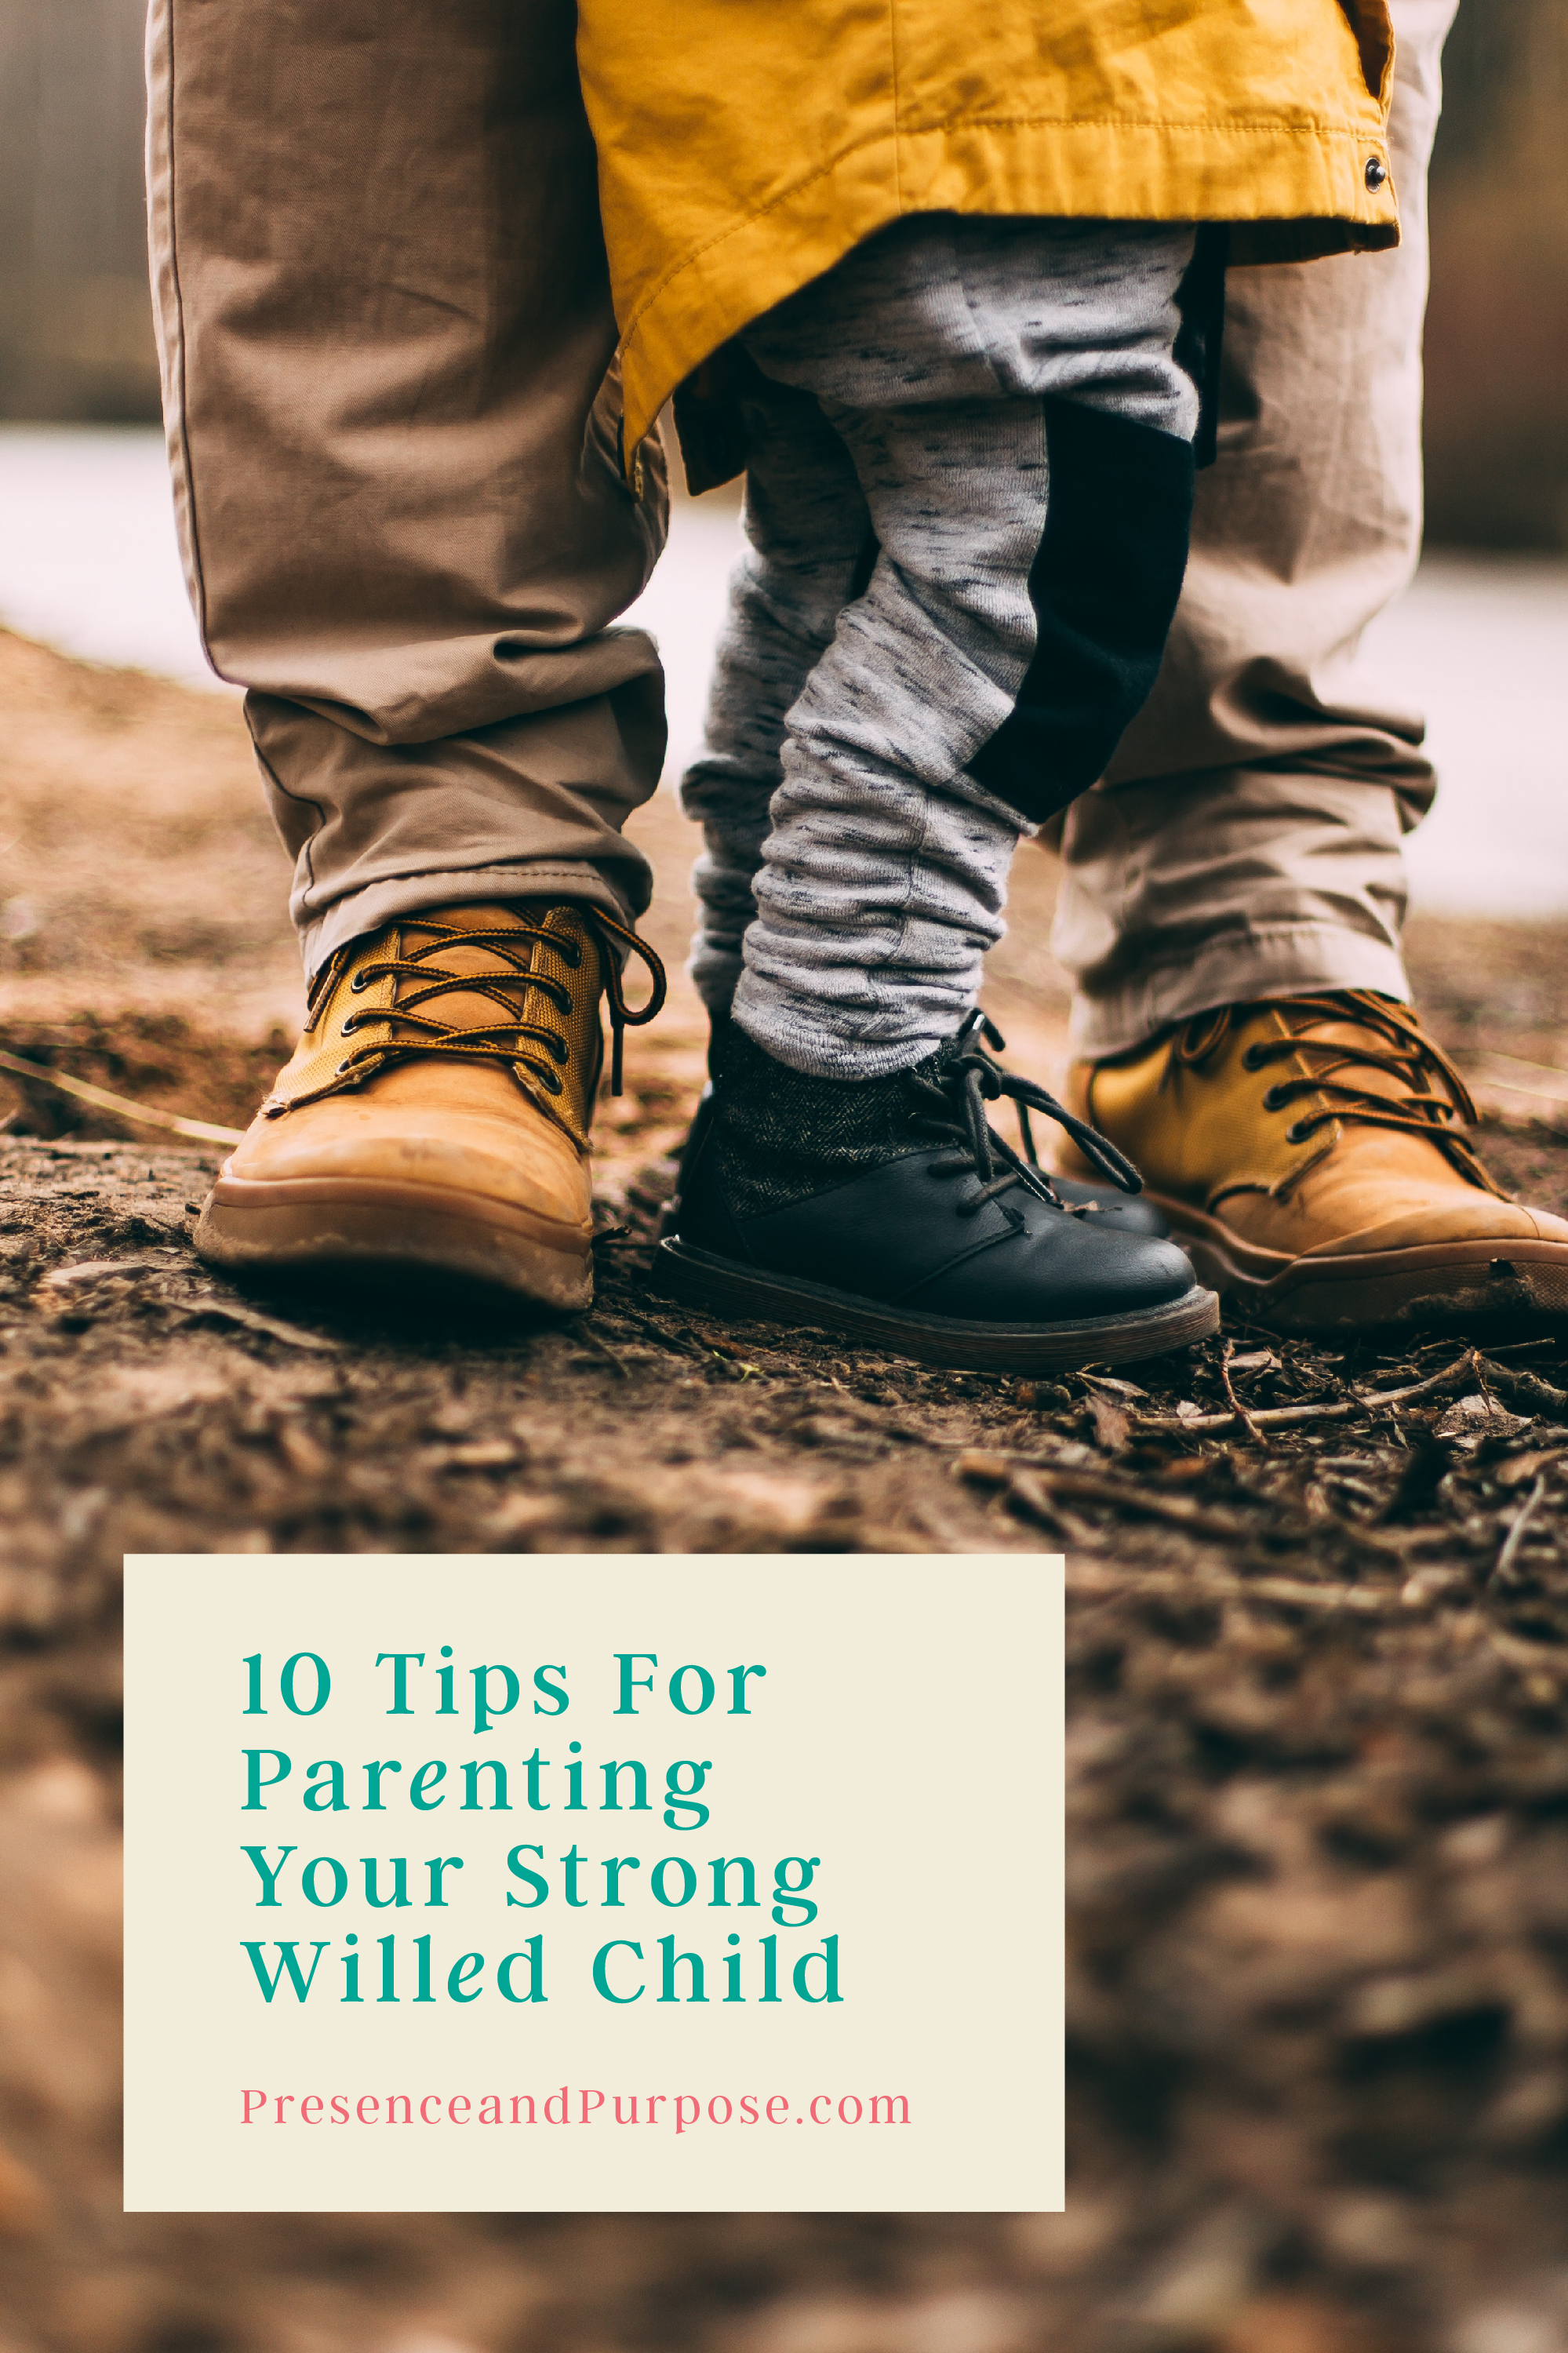 19_0407_Tips For Parenting Your Strong Willed Child.jpg